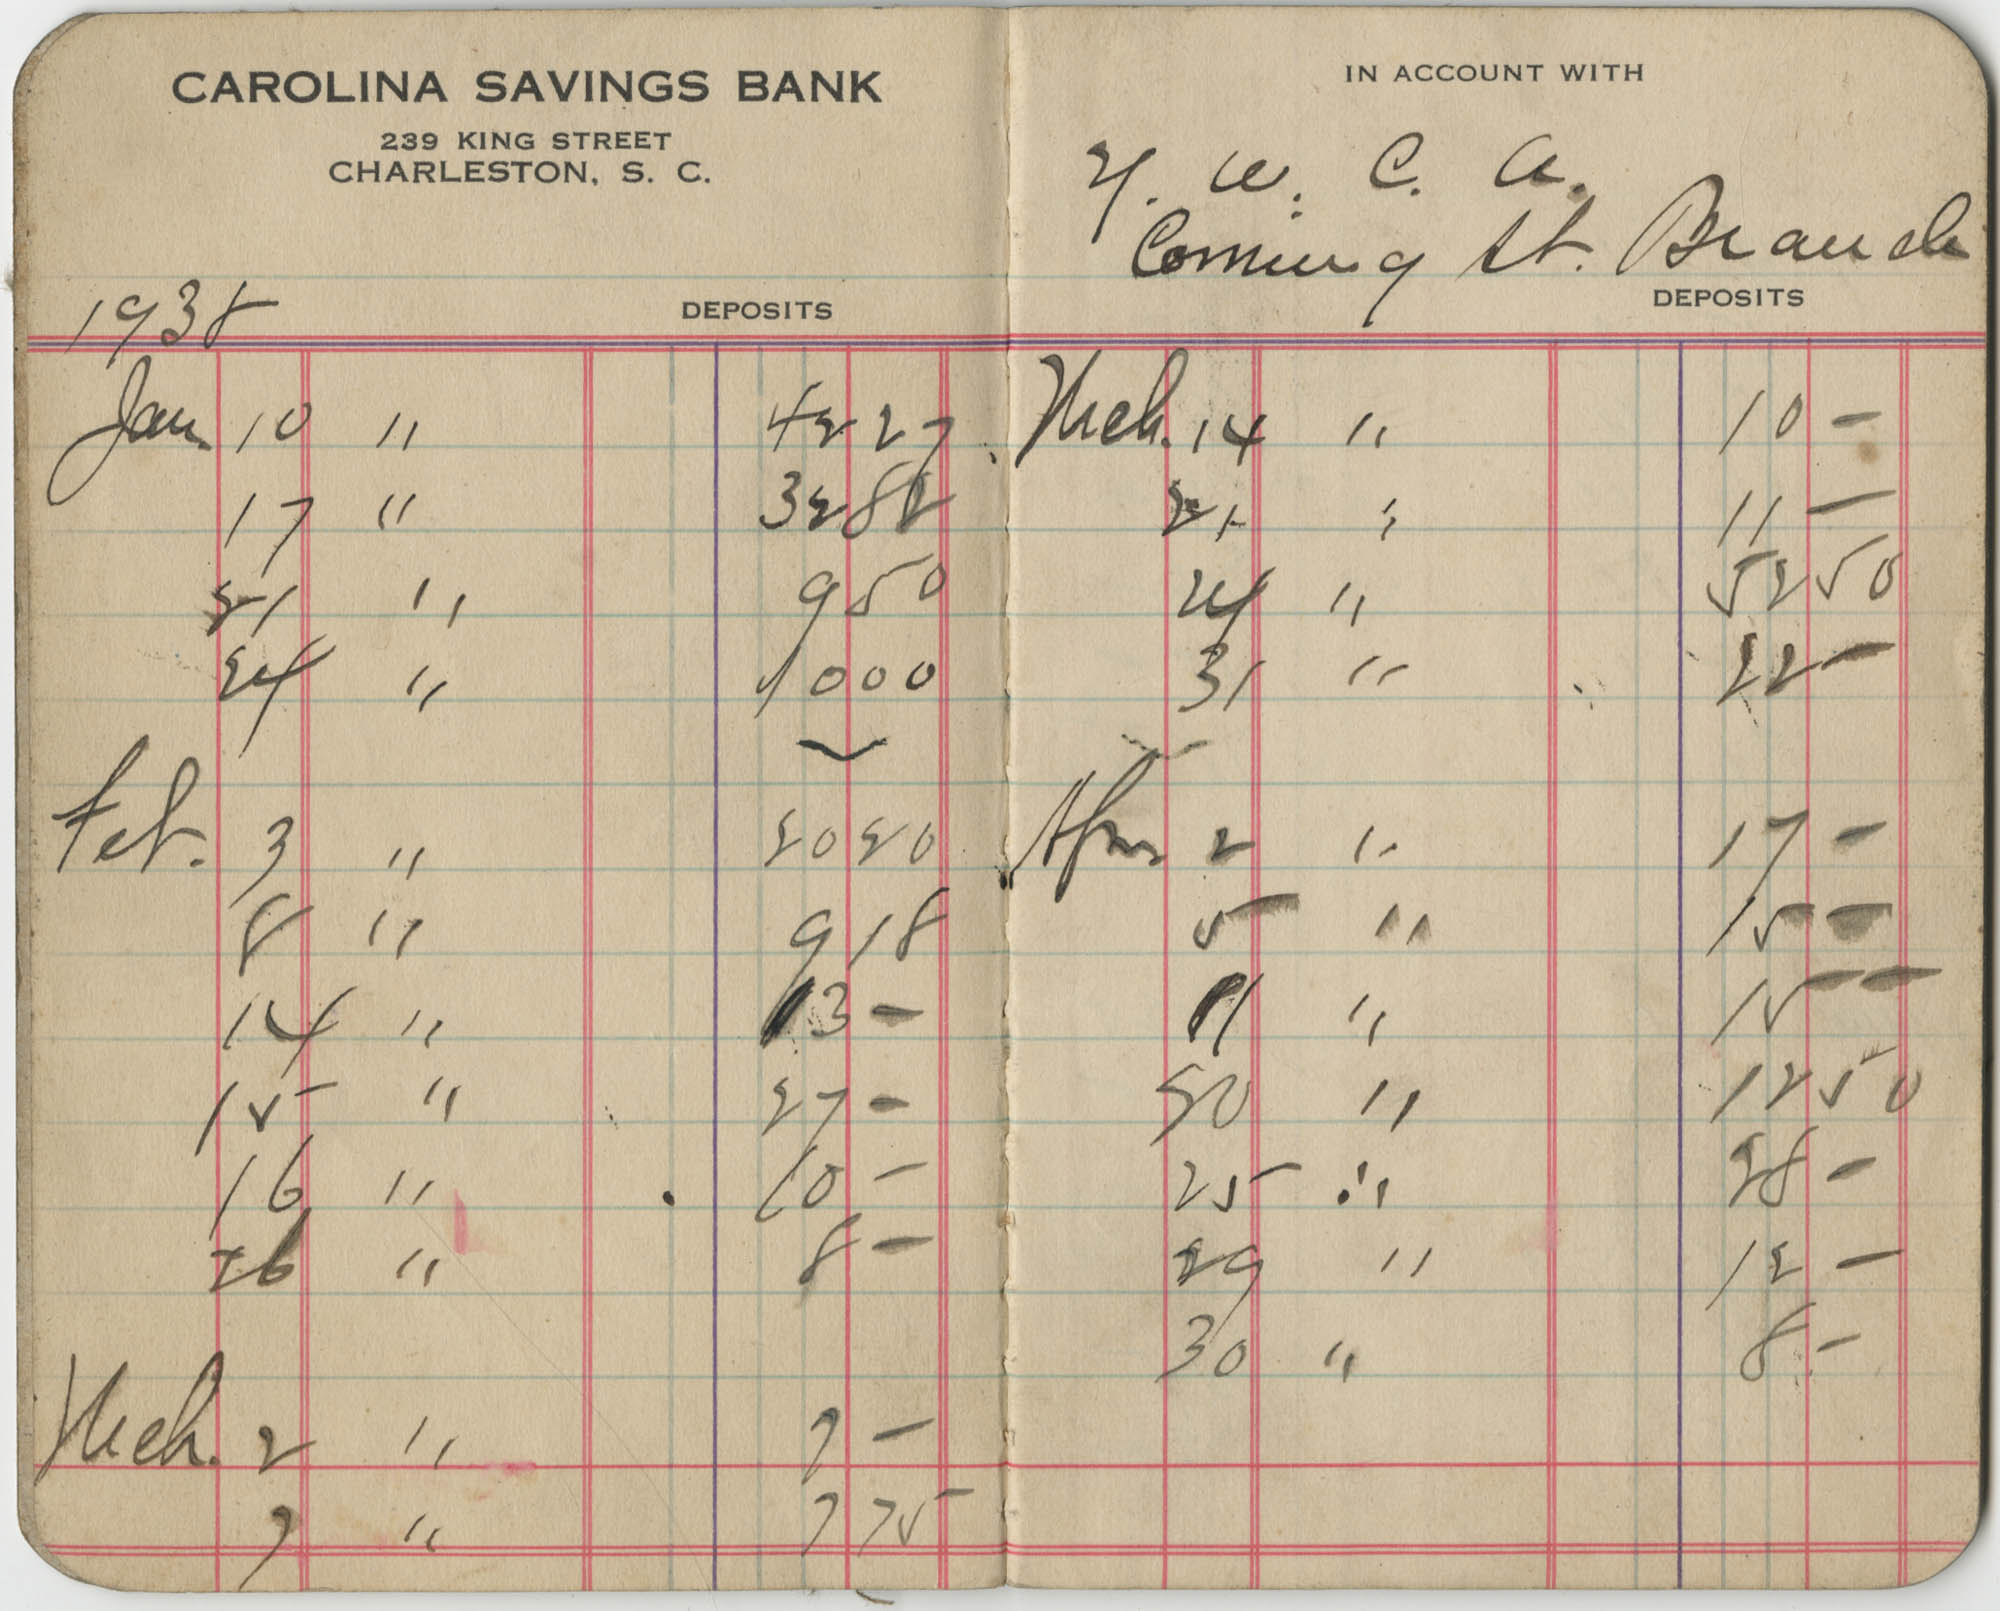 Carolina Savings Bank Account Book for the Y.W.C.A., Coming Street Branch, Pages 1 and 2